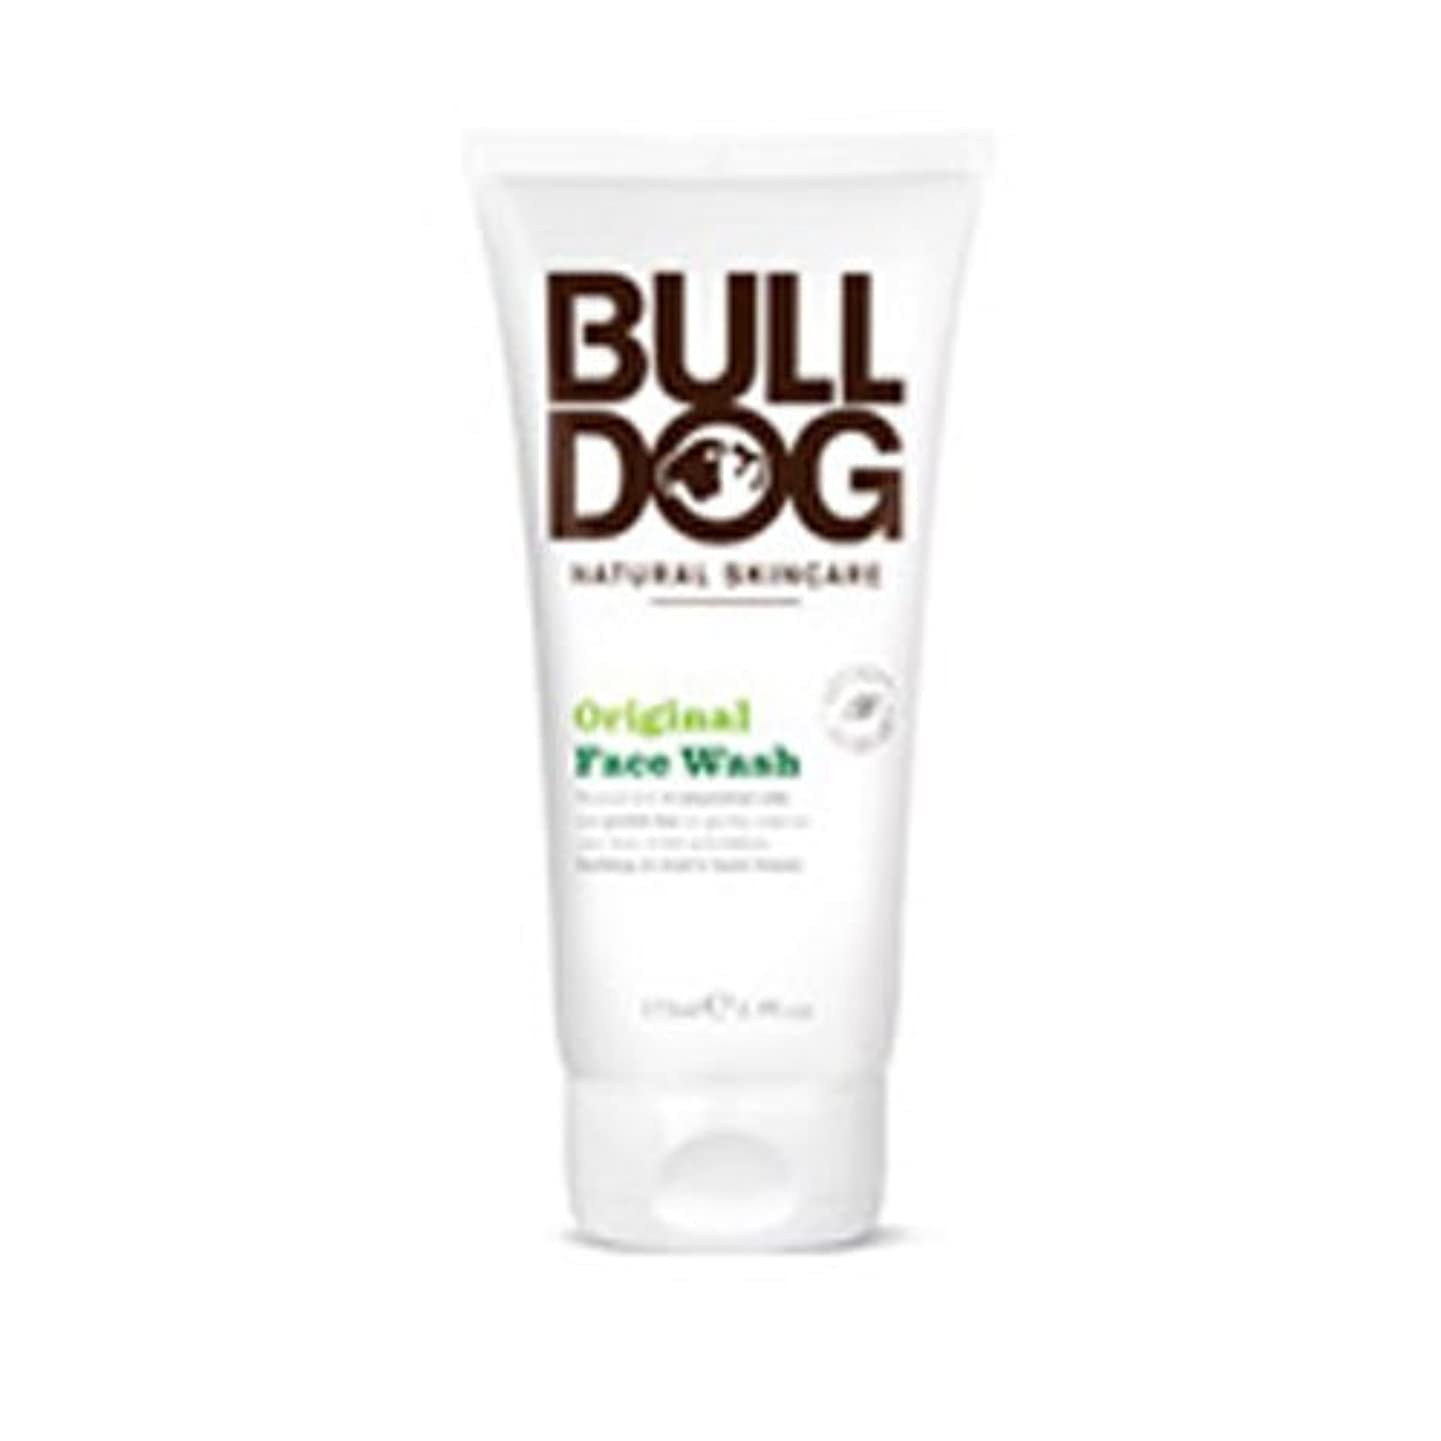 ごみ終わり失う海外直送品Original Face Wash, 5.9 oz by Bulldog Natural Skincare